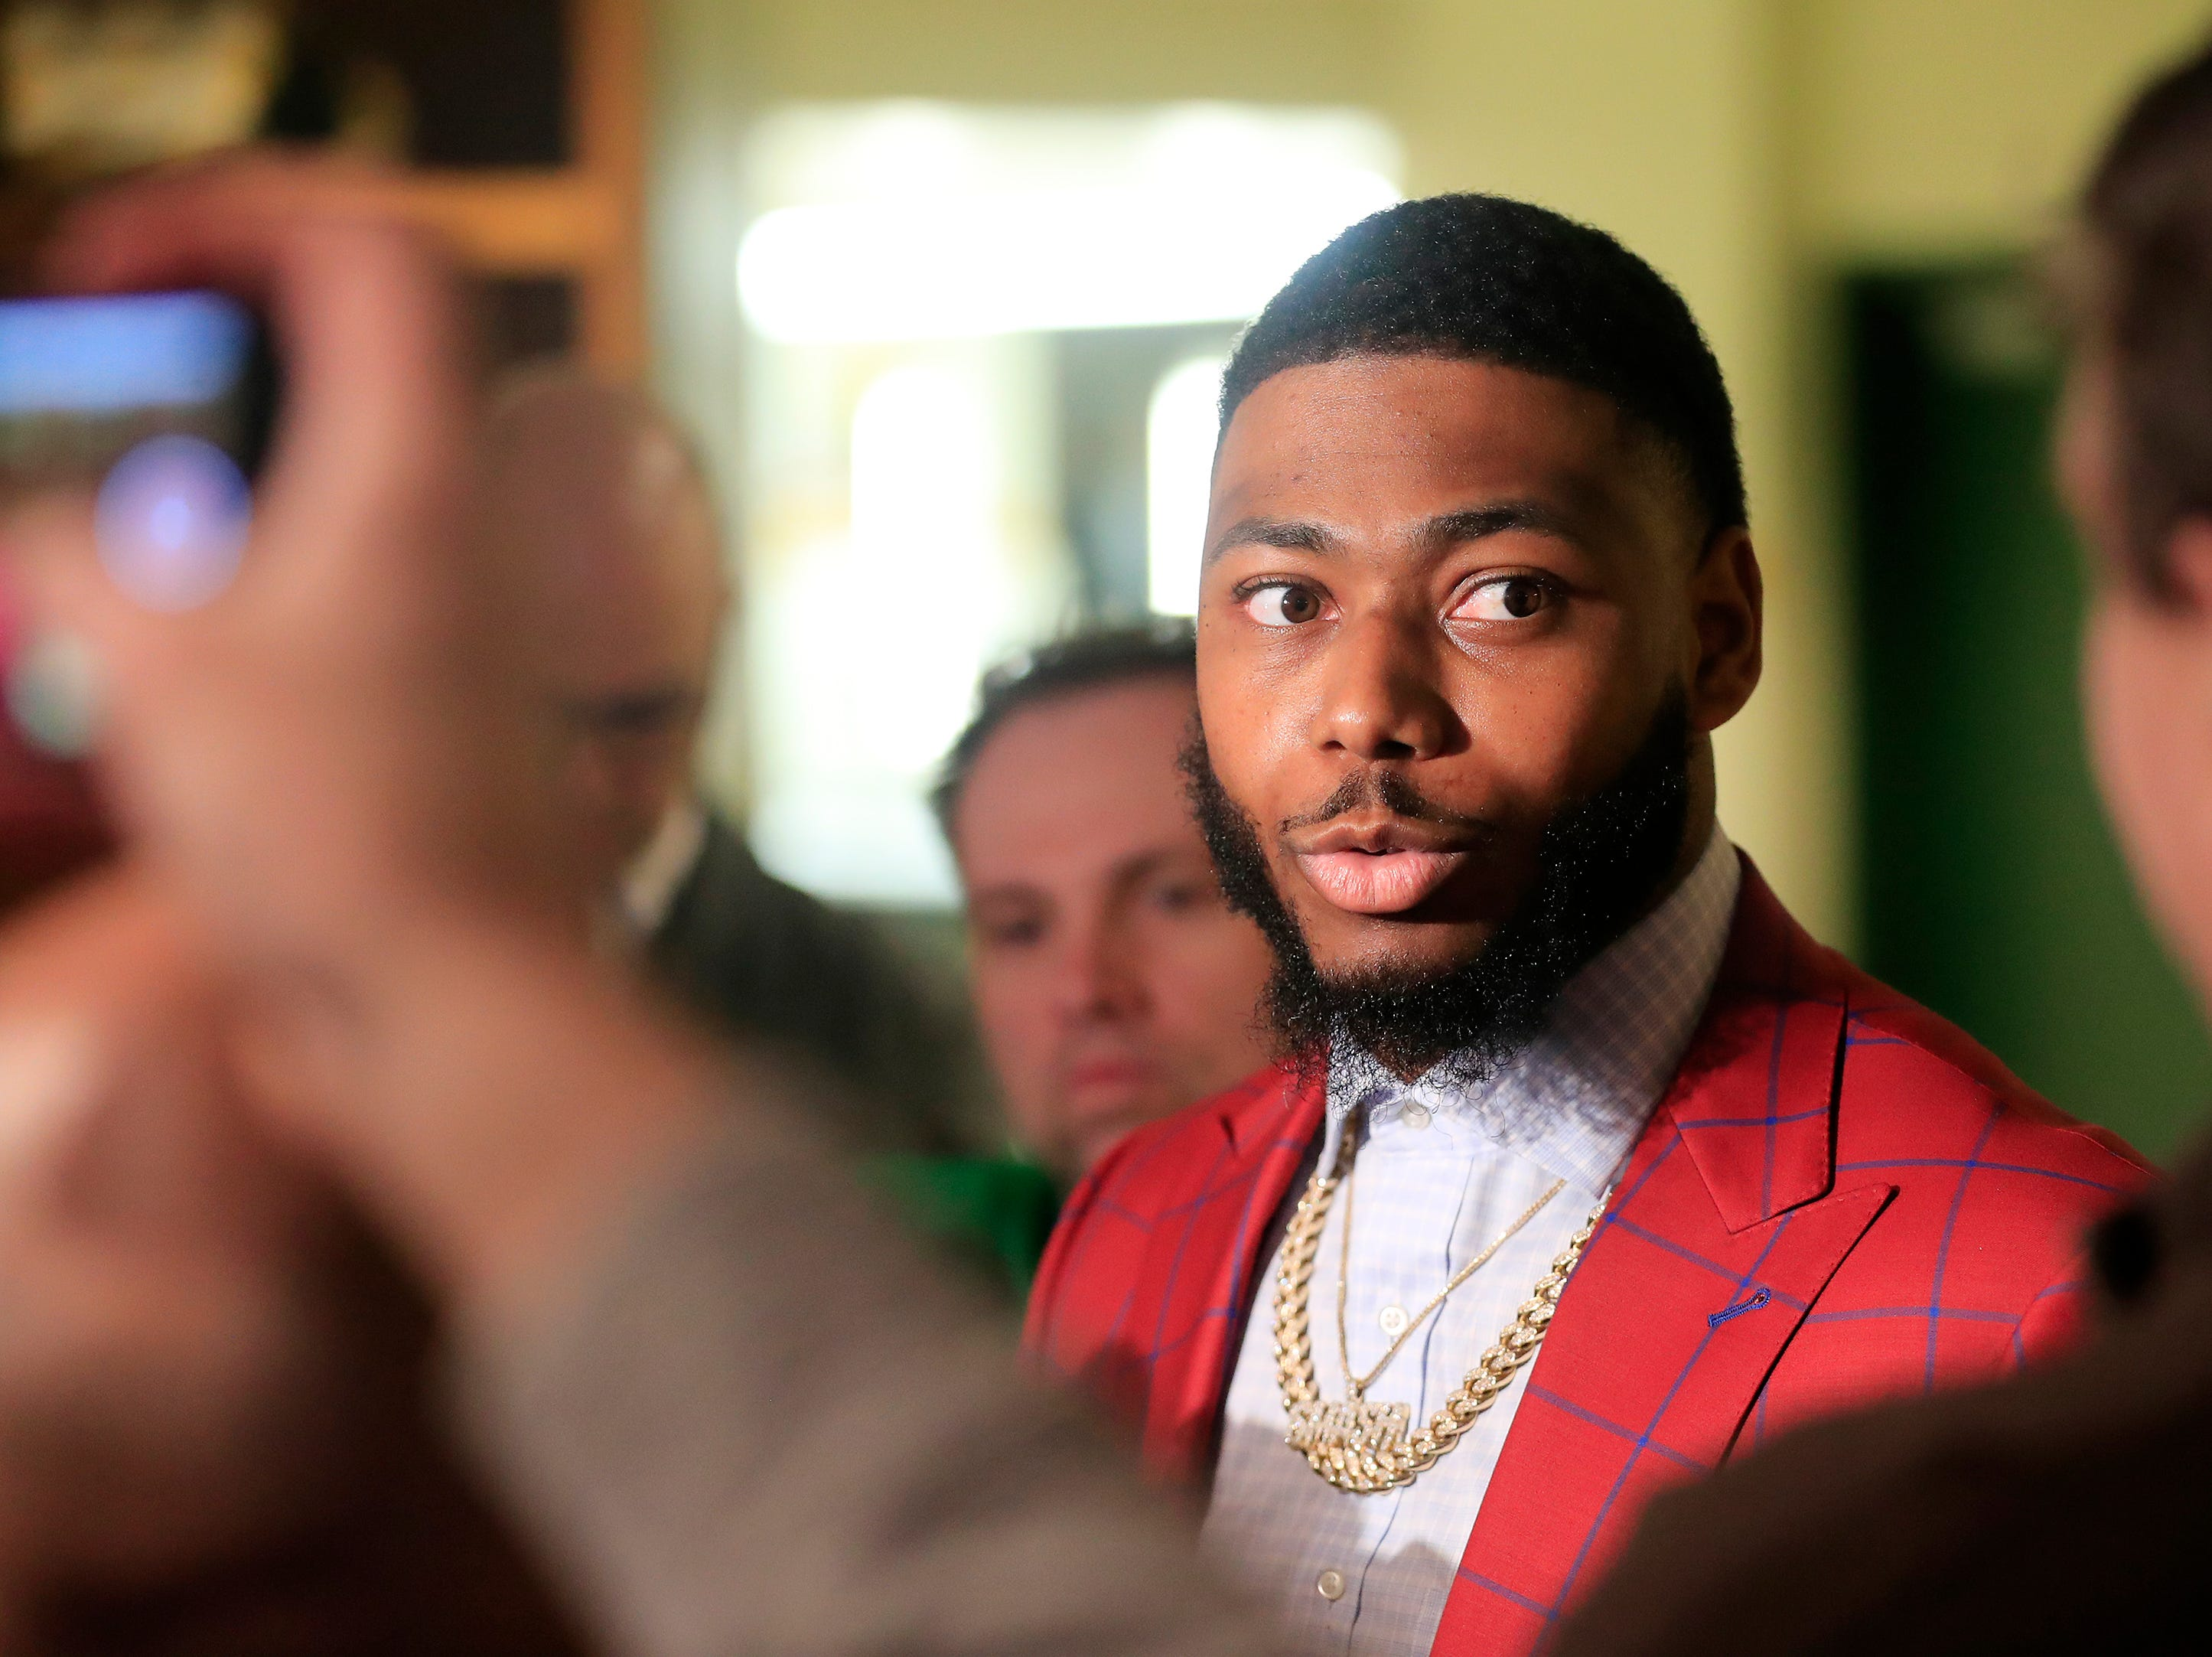 Green Bay Packers safety Adrian Amos talks to members of the media at Lambeau Field on Thursday, March 14, 2019 in Green Bay, Wis.